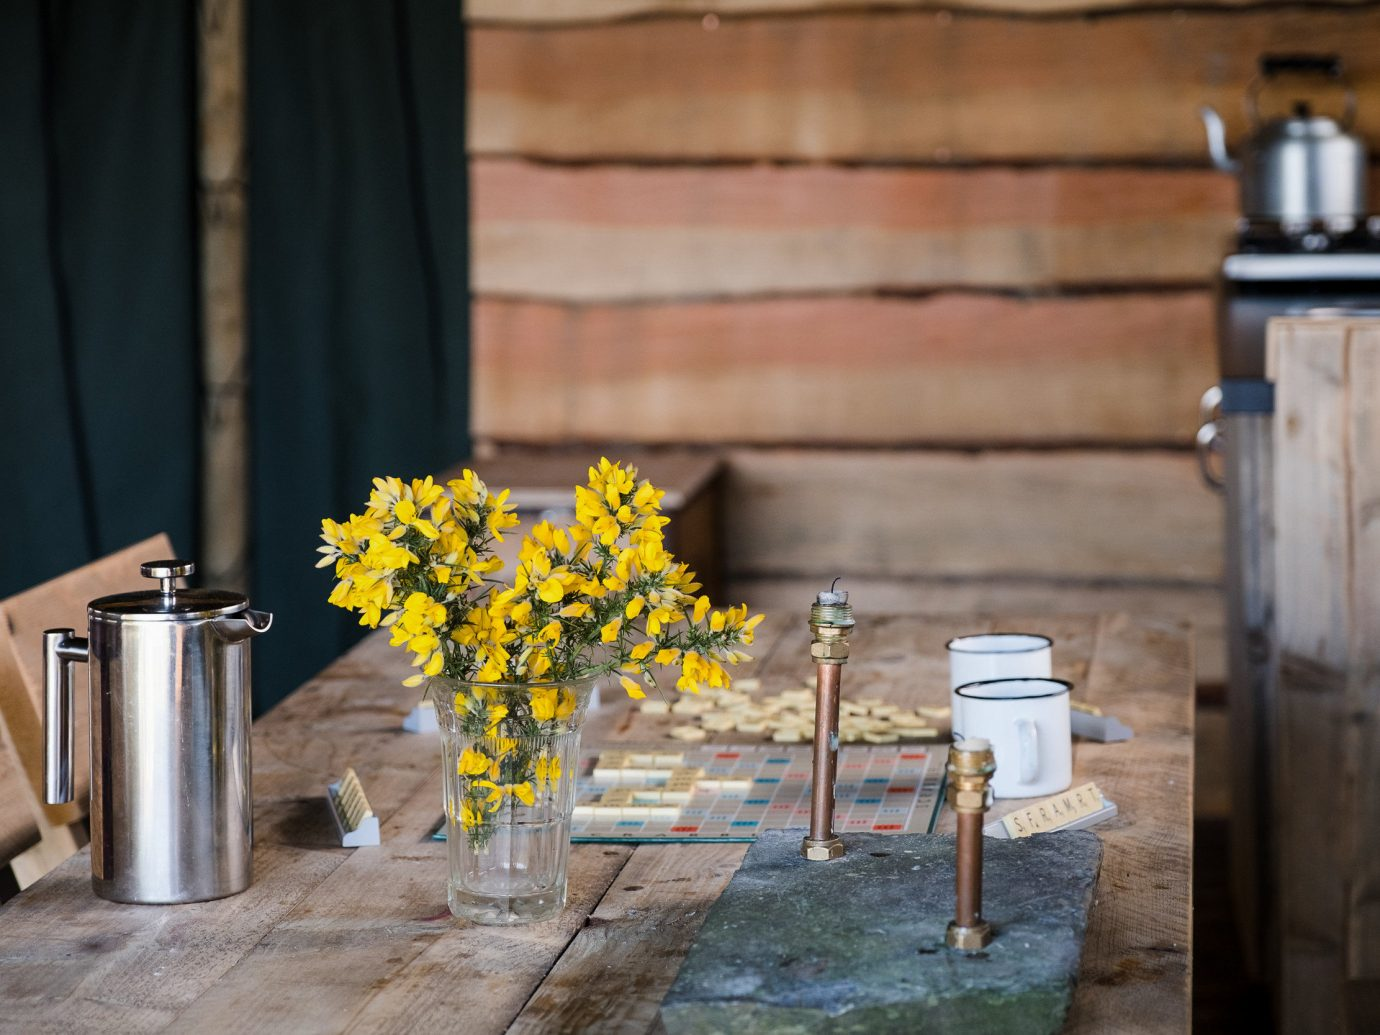 Glamping Outdoors + Adventure Trip Ideas yellow flower table home furniture wood house window plant chair floristry